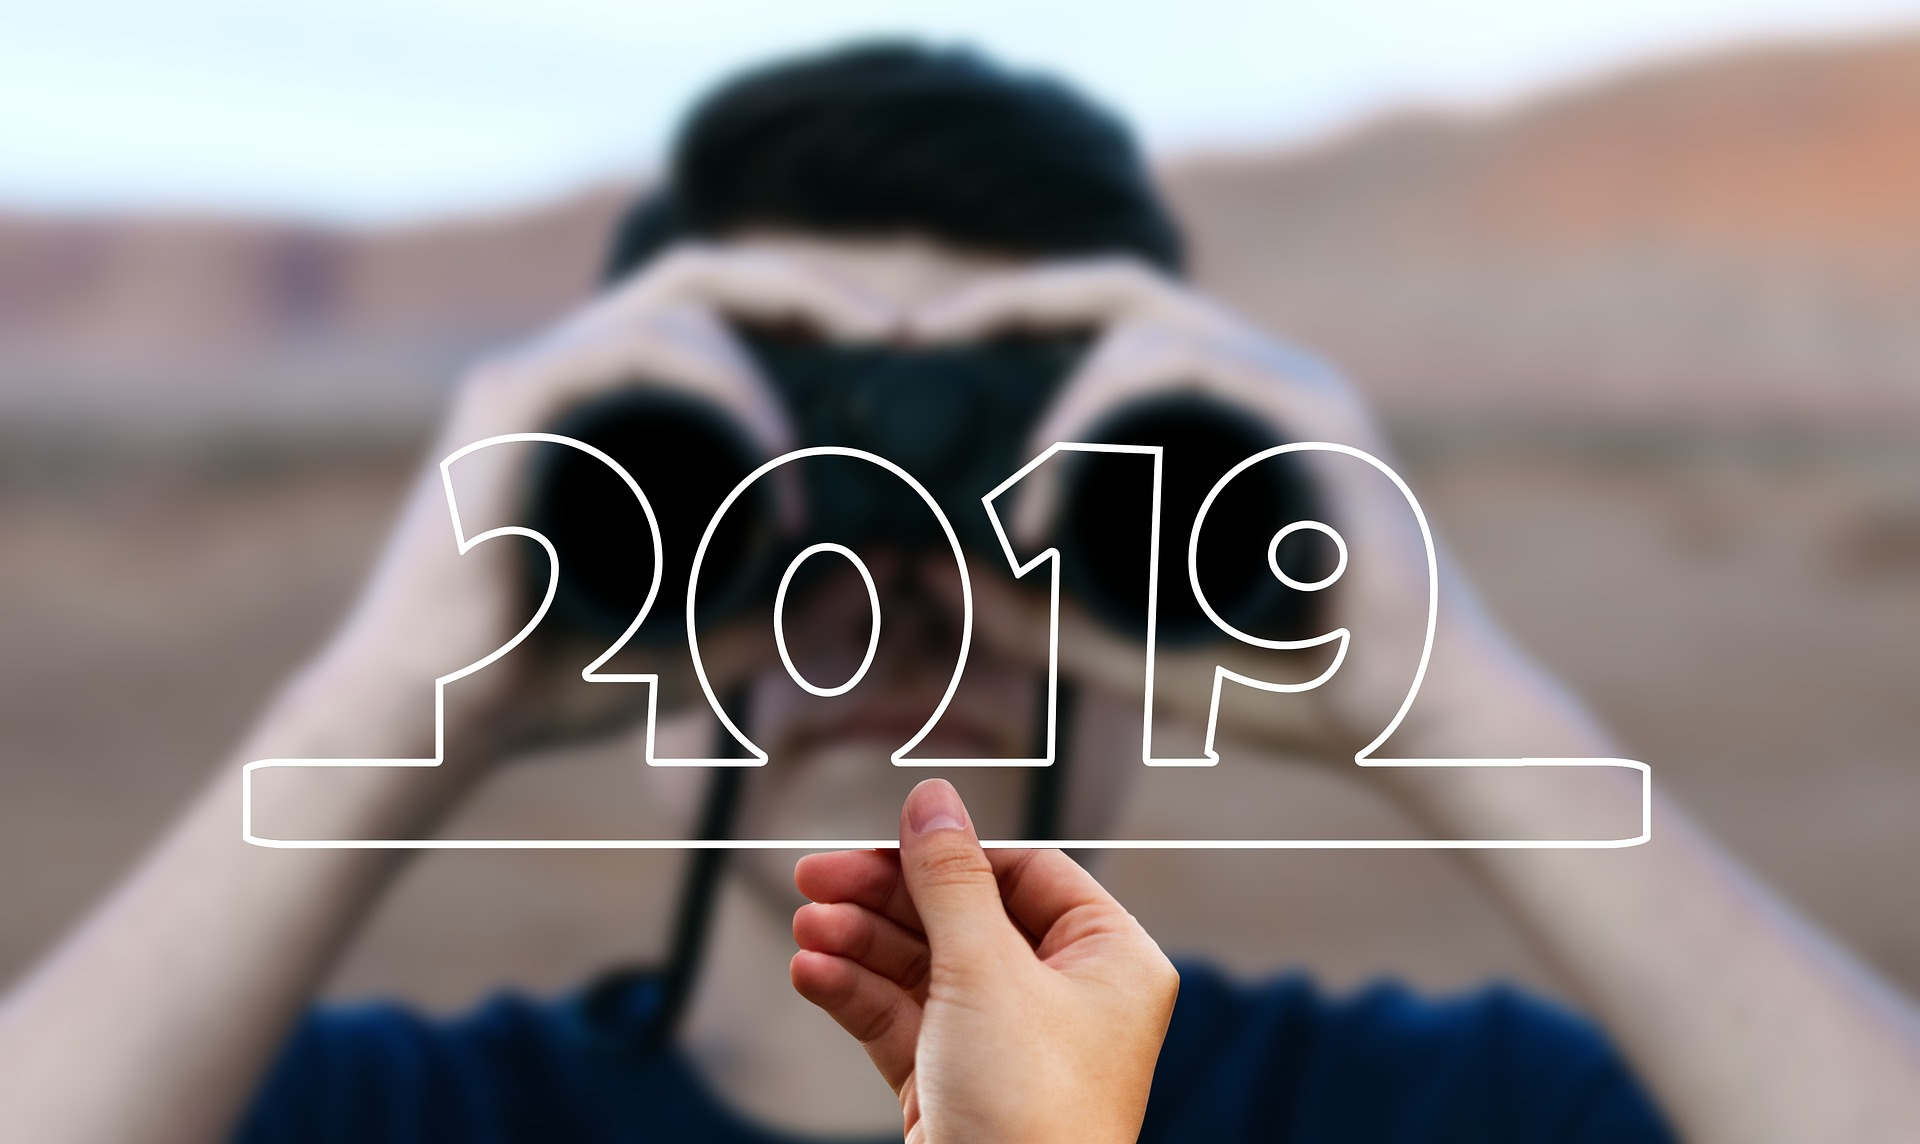 4 TALENT MANAGEMENT STRATEGIES FOR 2019